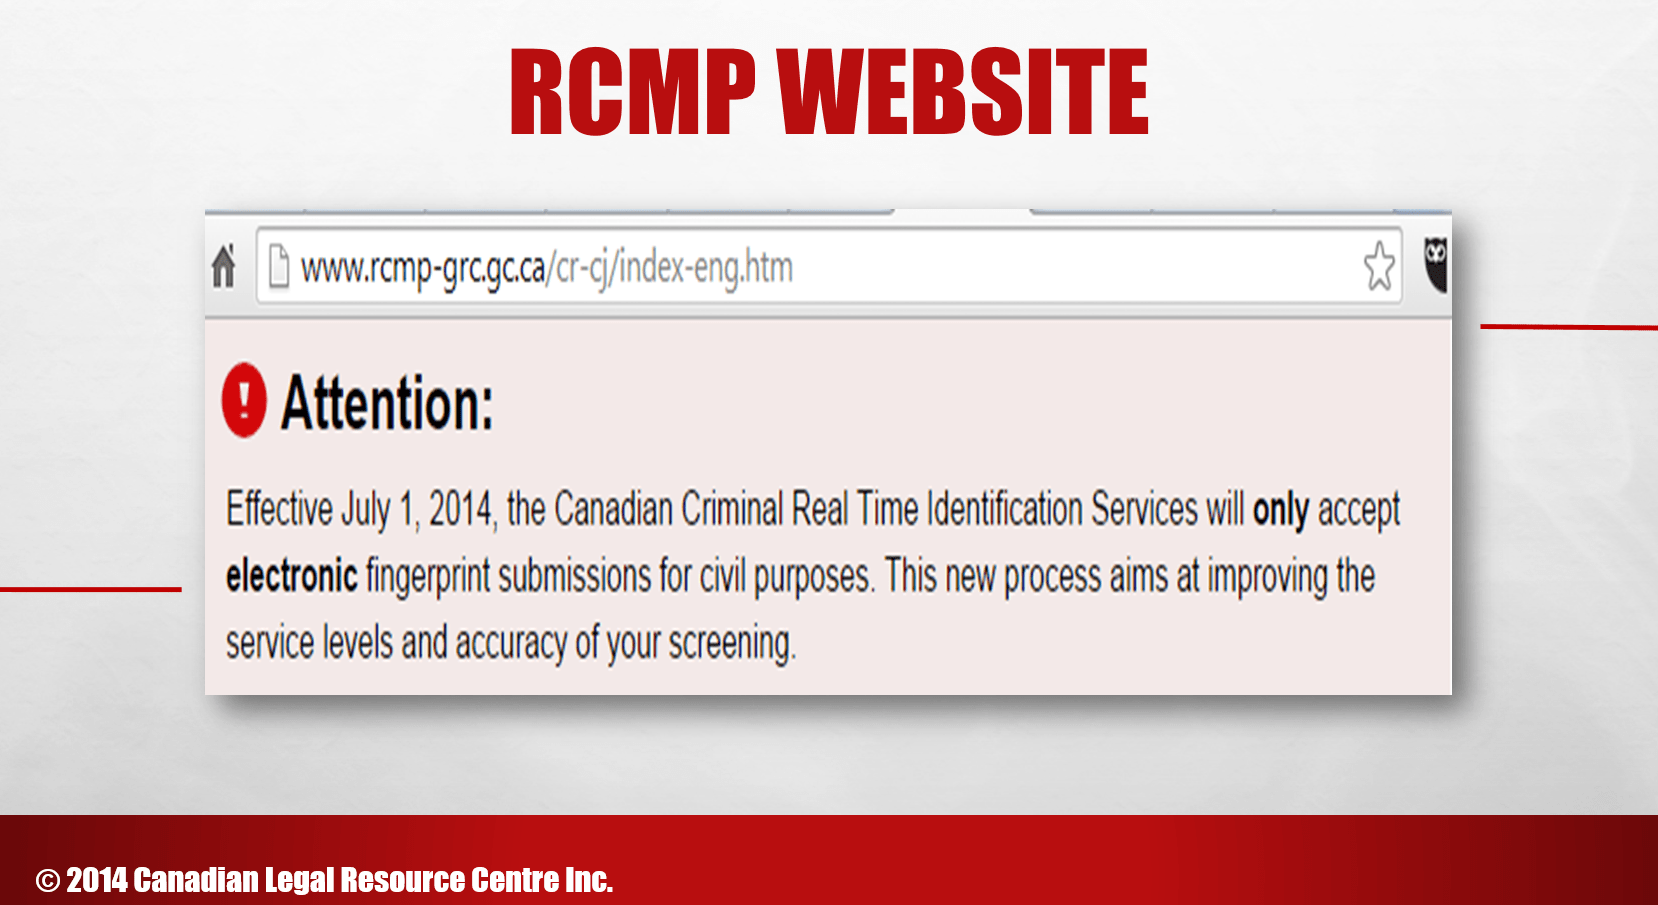 RCMP Electronic Fingerprint Only Notice